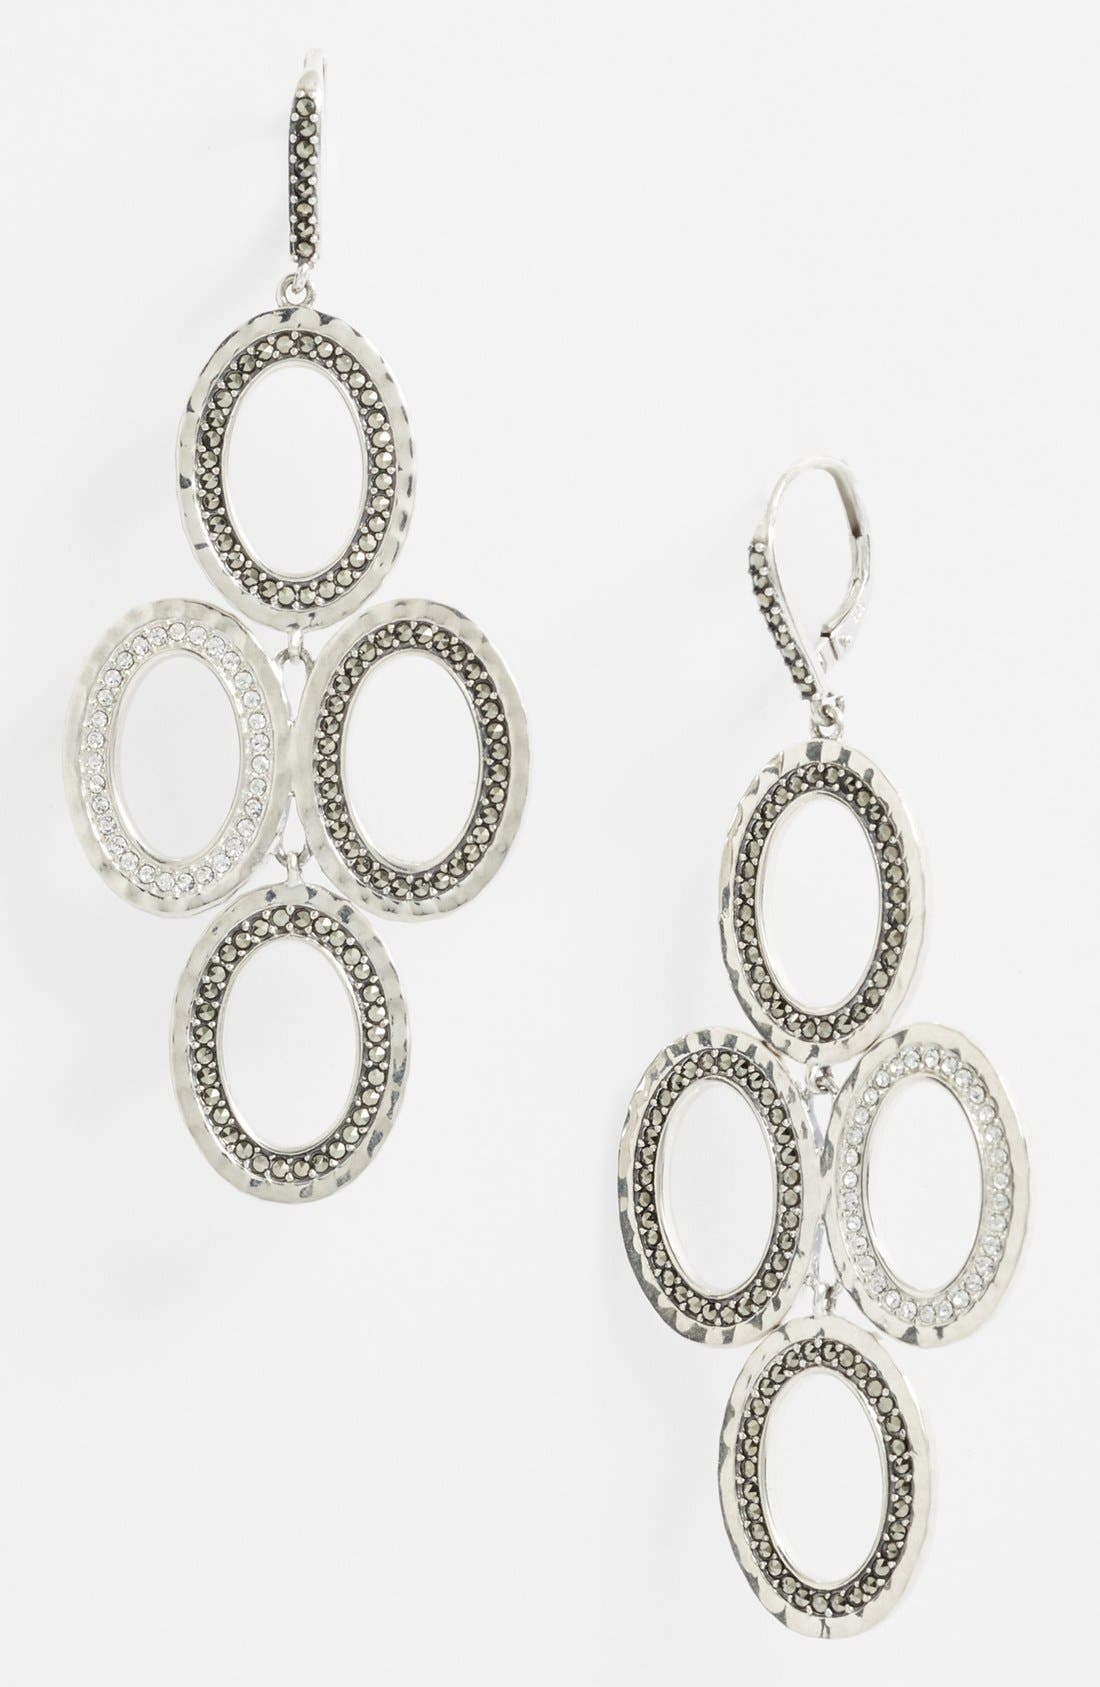 Alternate Image 1 Selected - Judith Jack 'Halo' Oval Chandelier Earrings